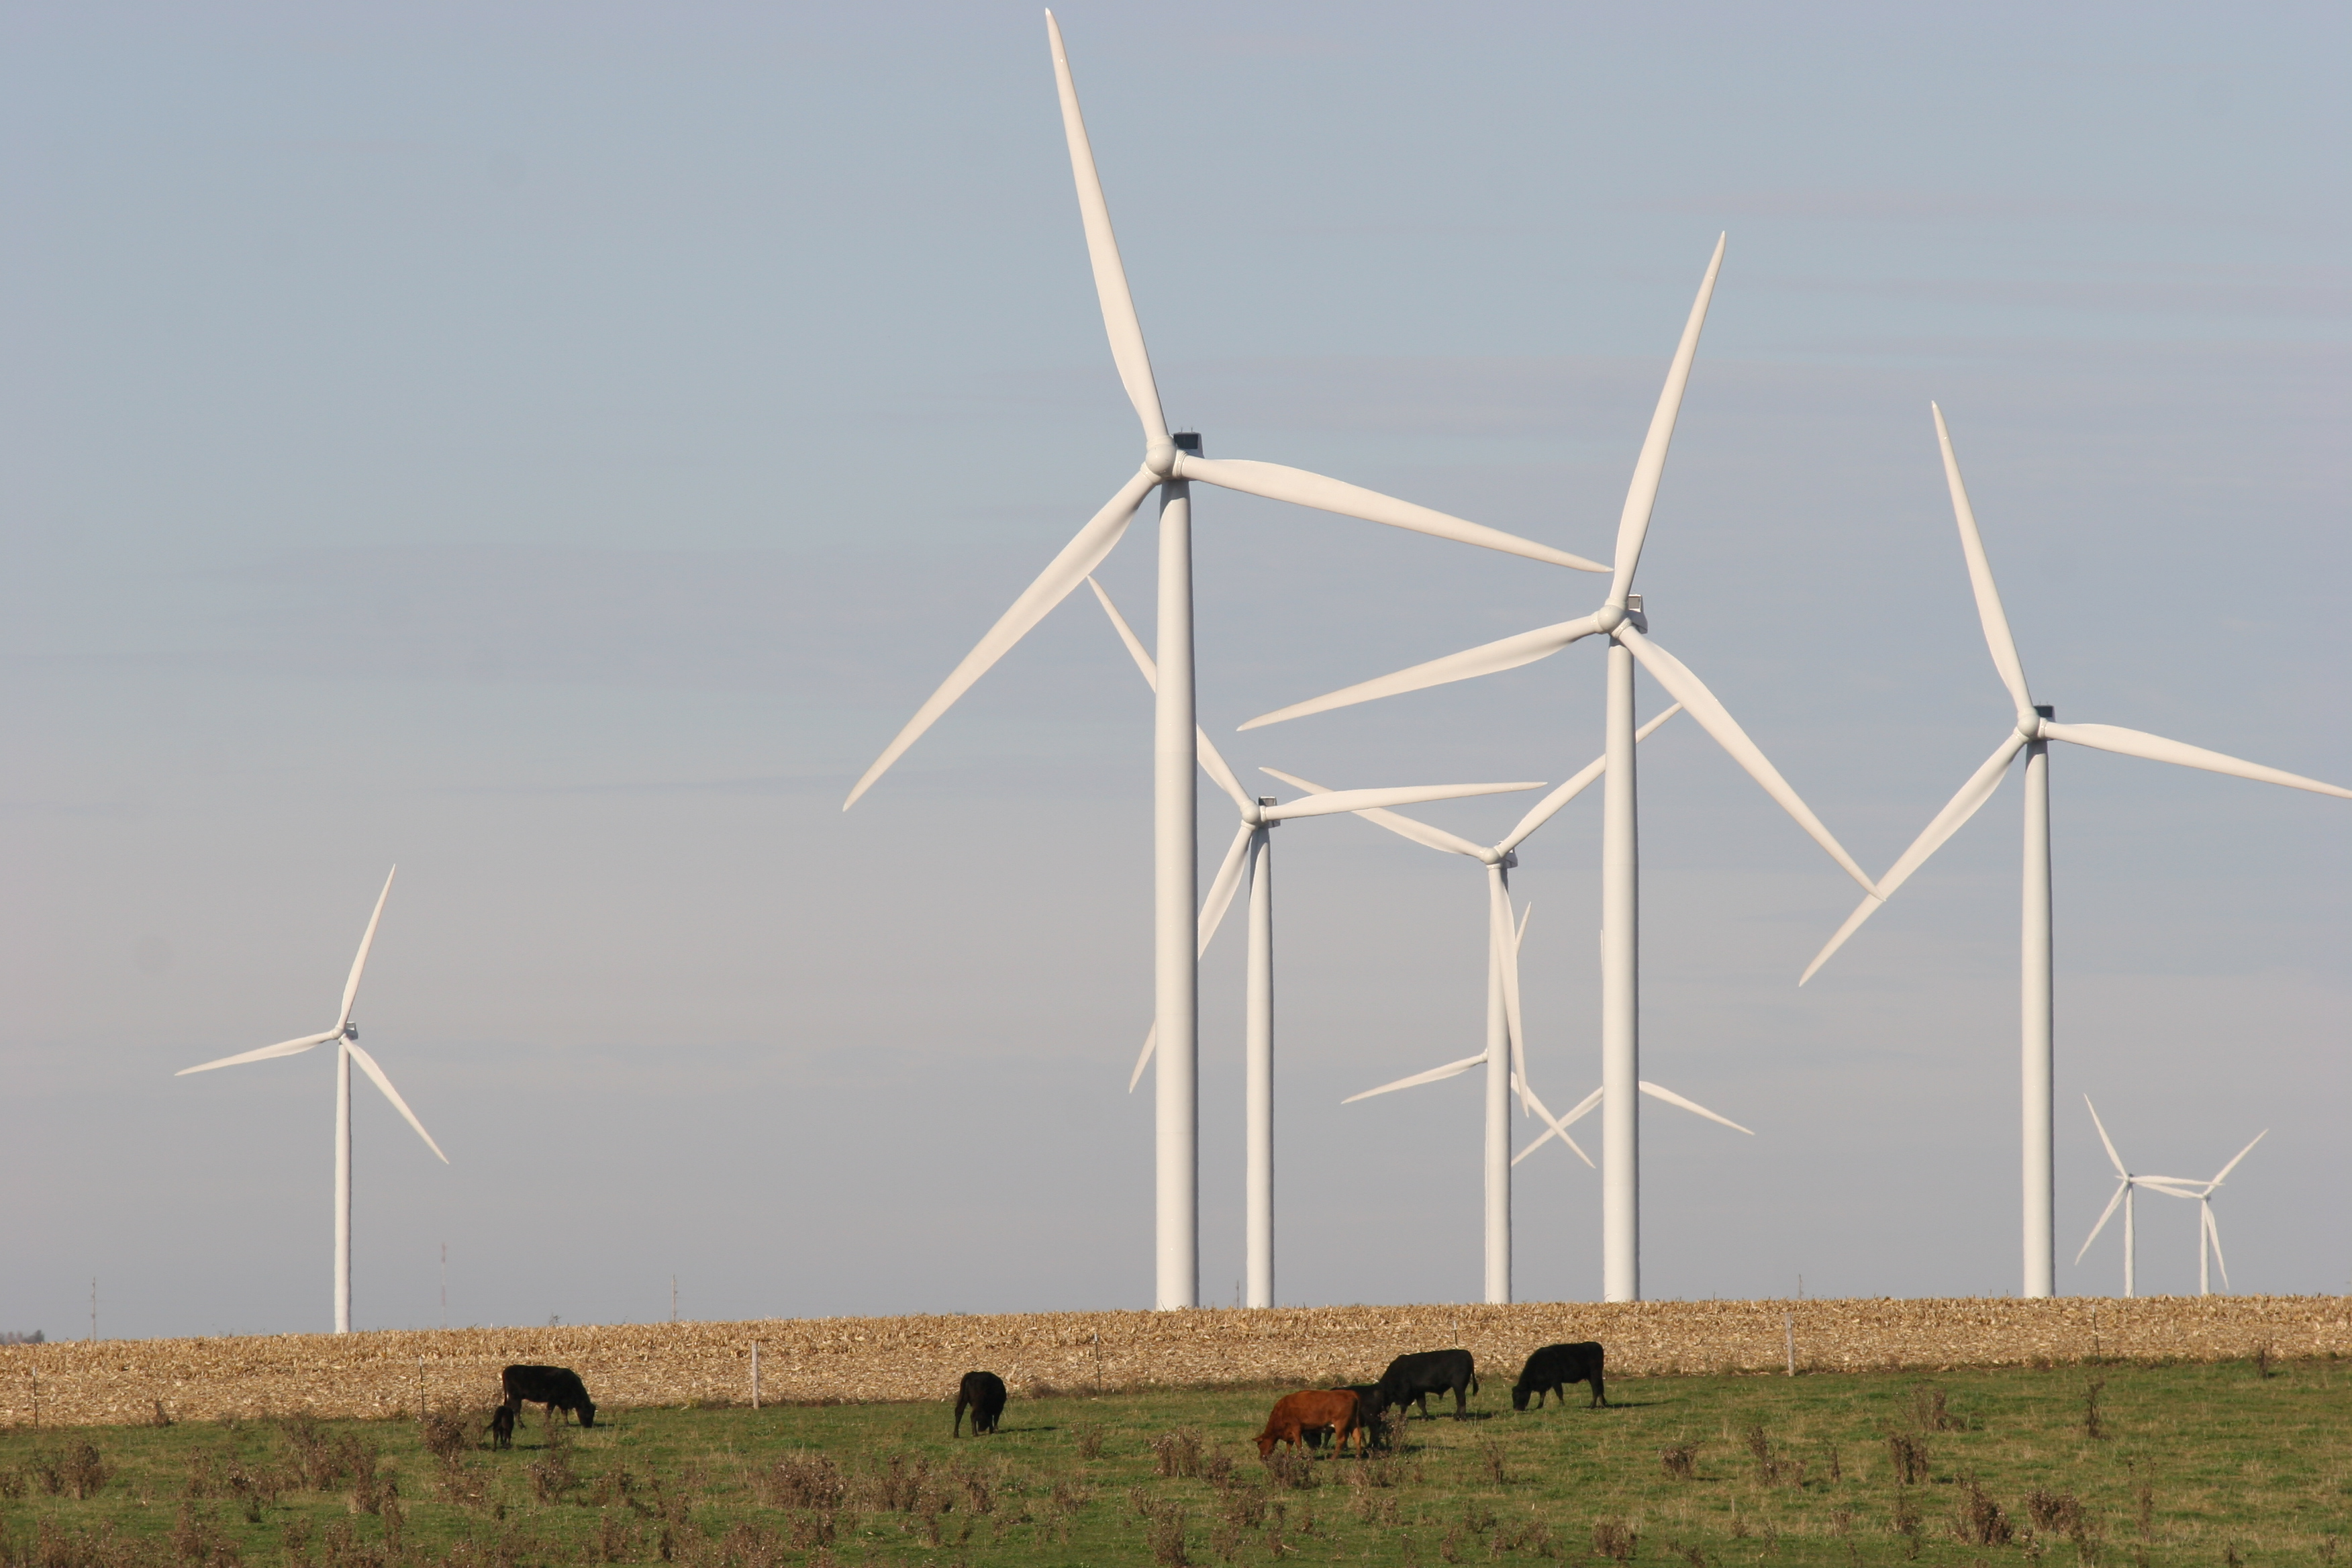 collection of wind turbines near farm fields. Click to enlarge .